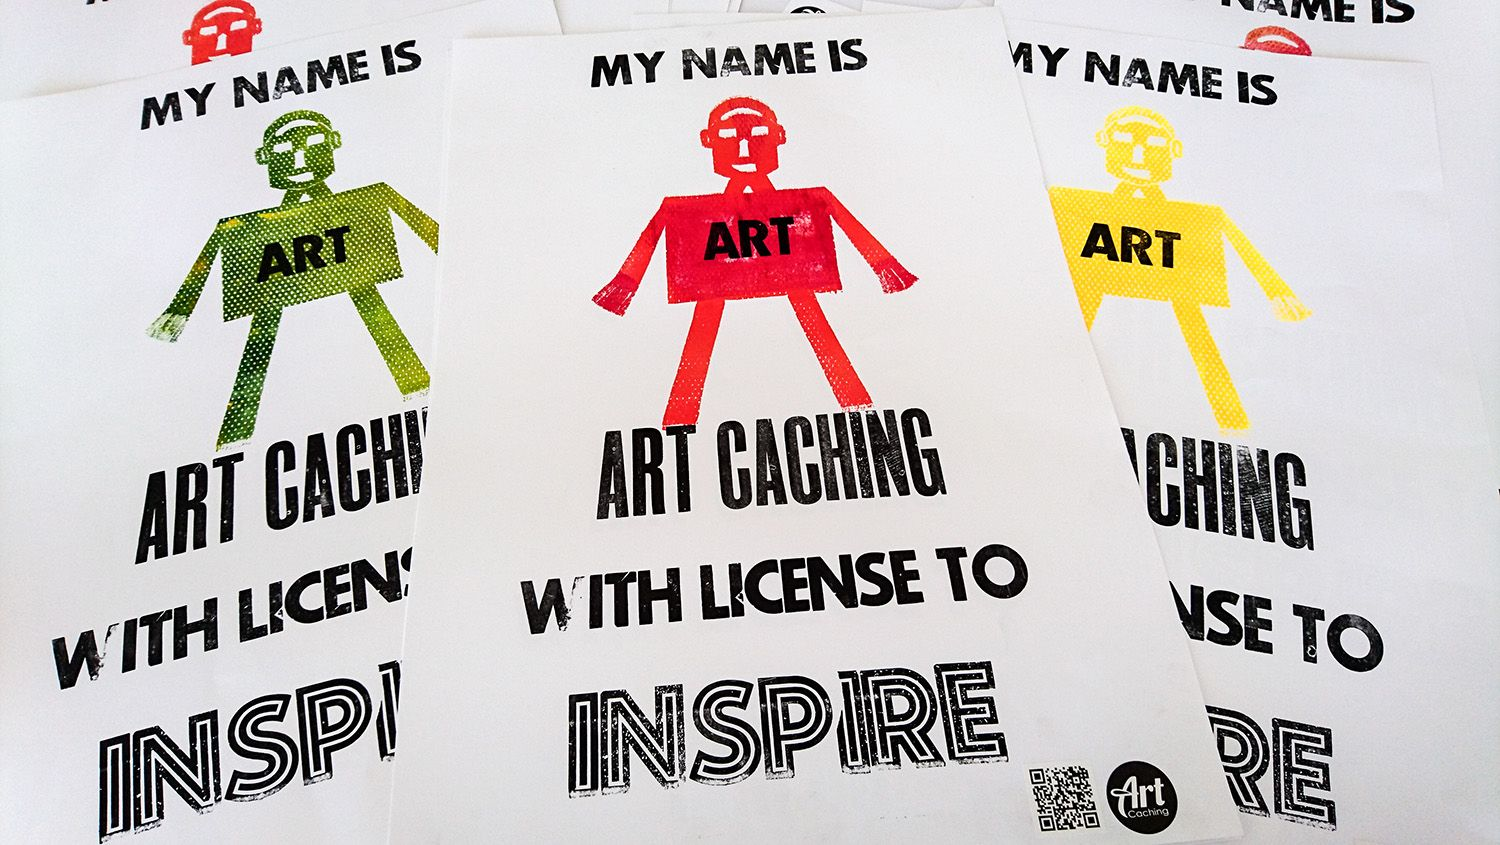 Art Caching, with a license to inspire – Letterpress på Rundqvist & Co